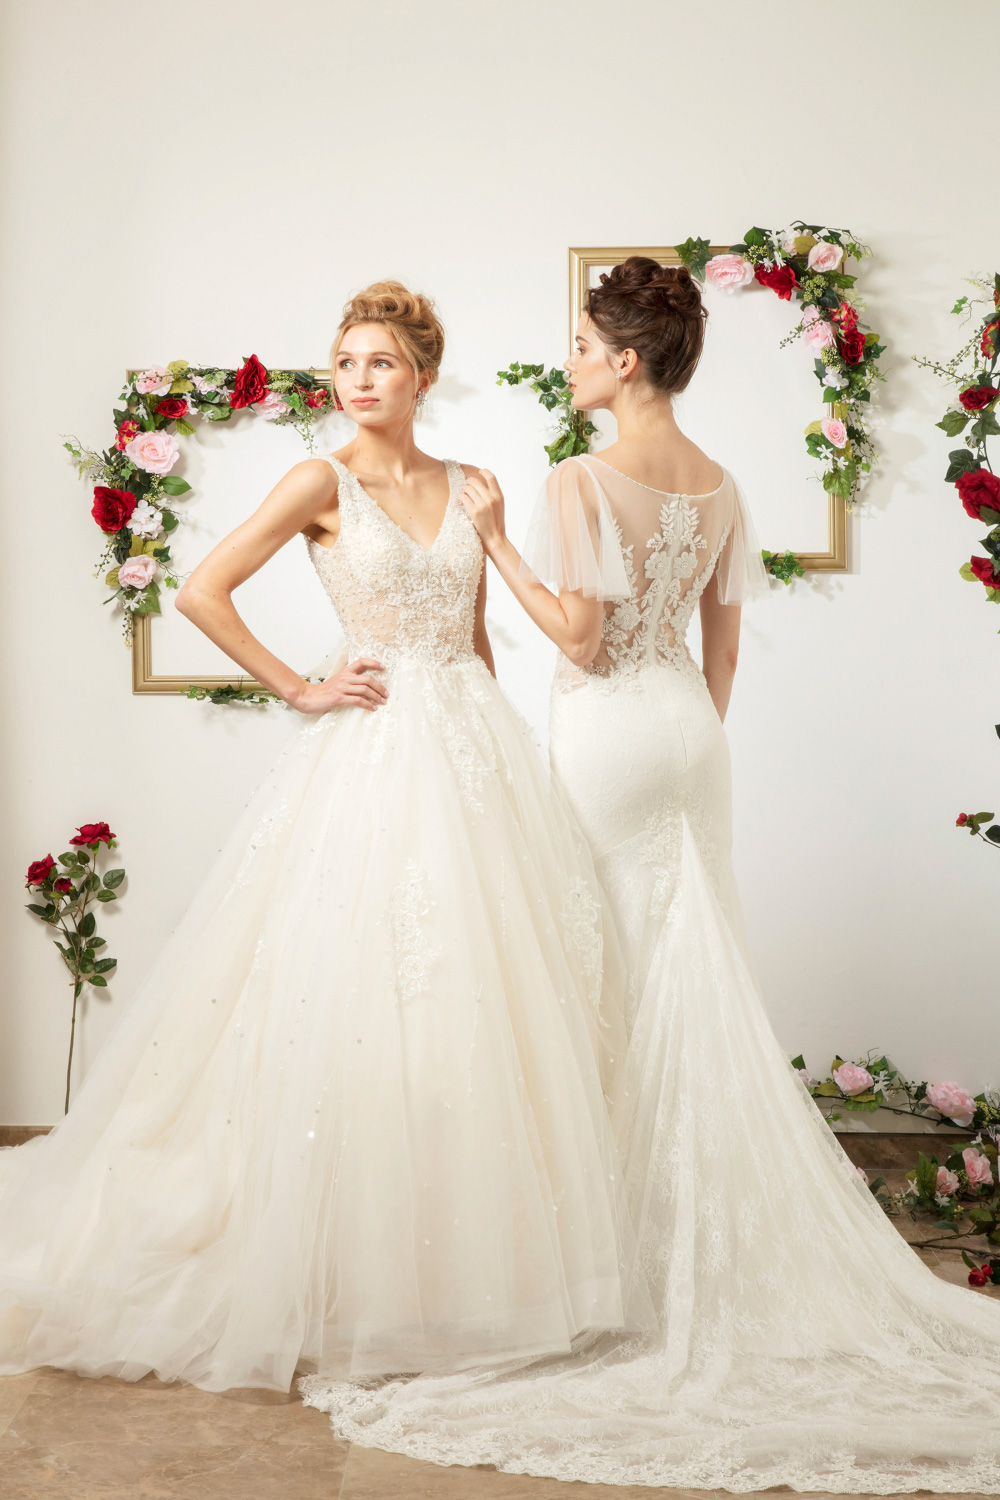 Wedding dresses by CCM Wedding